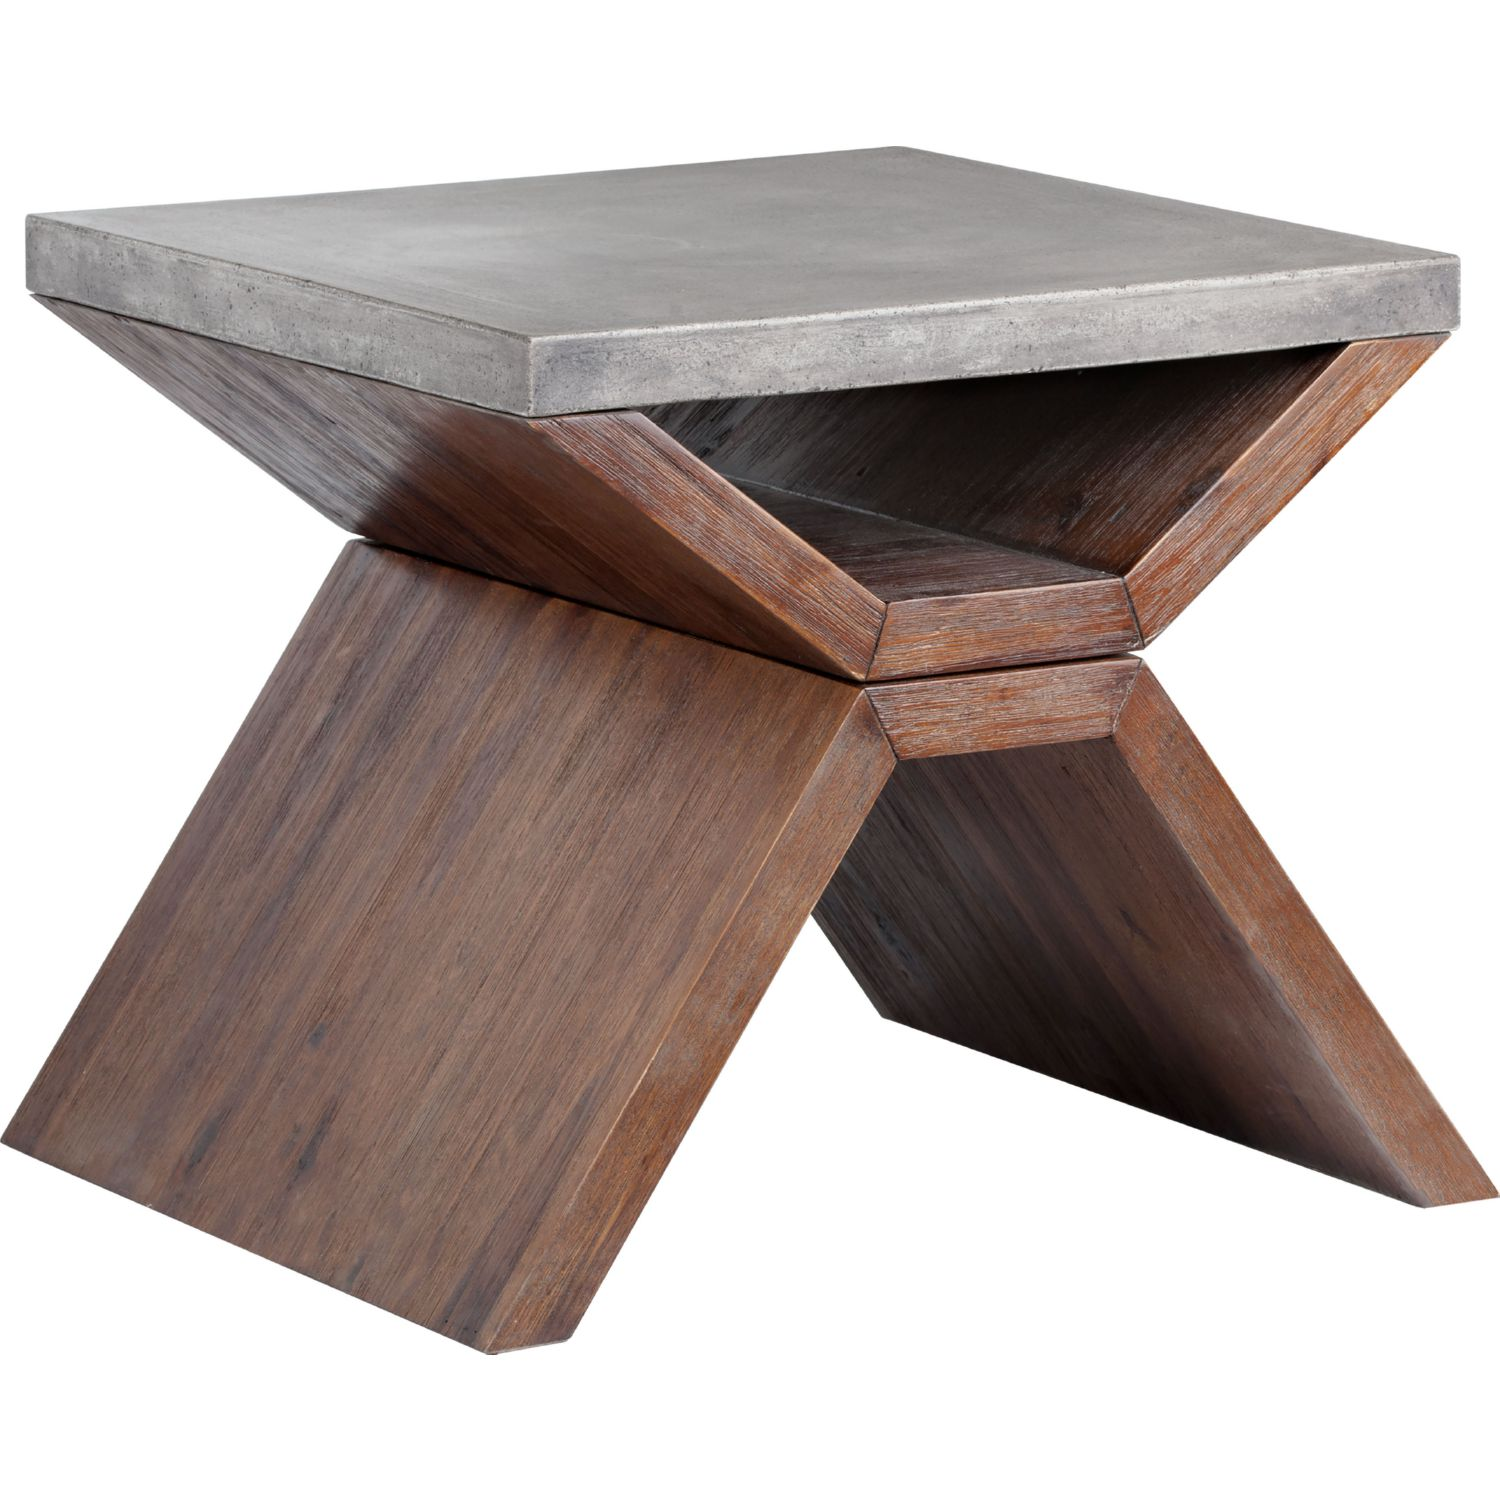 sunpan vixen end table concrete top acacia wood base accent dining room sofa tablecloth for round gray outdoor side furniture bedside tables penny tiffany style chandelier ashley